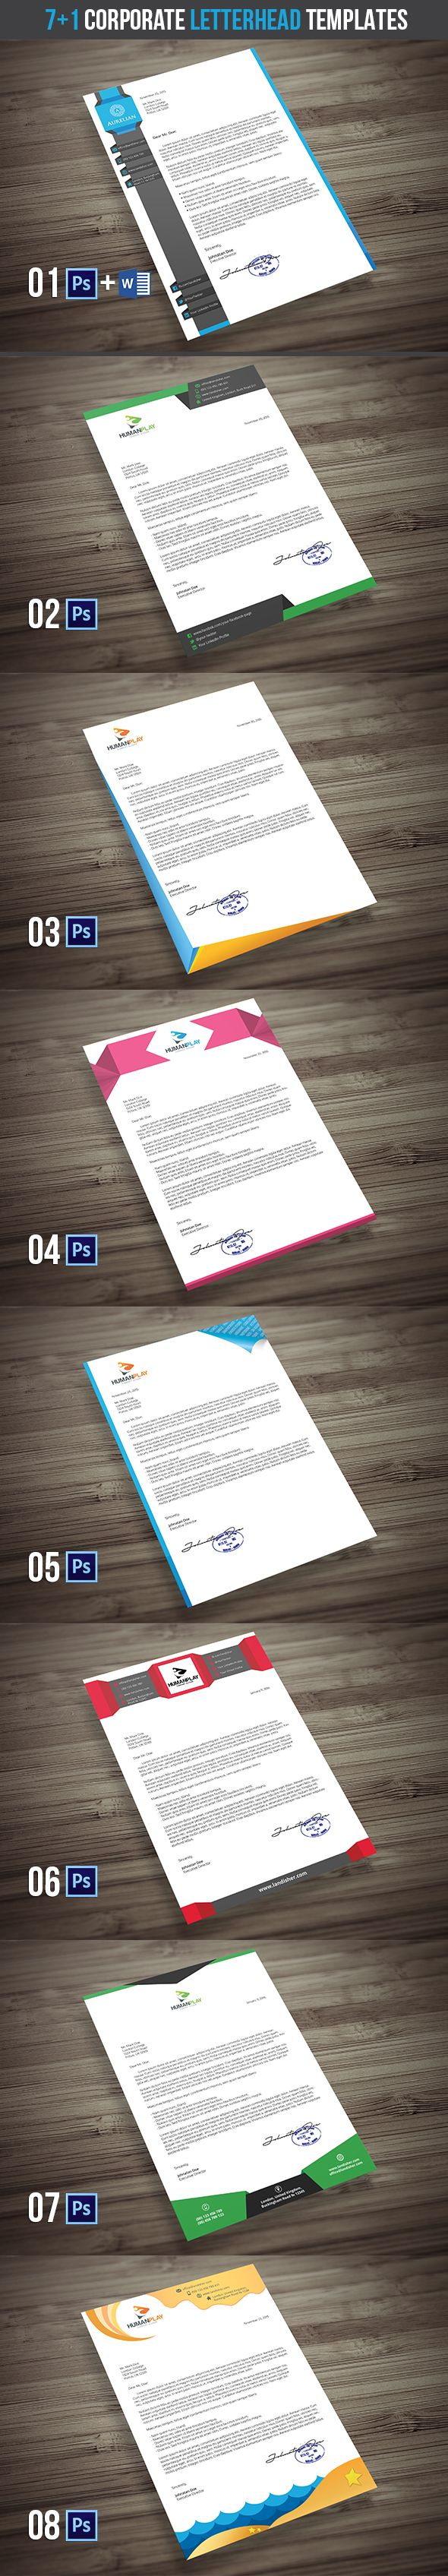 7+1 Corporate Letterhead Templates is creative, clean and modern 8-piece template pack suitable for company letterheads, documents and presentations.